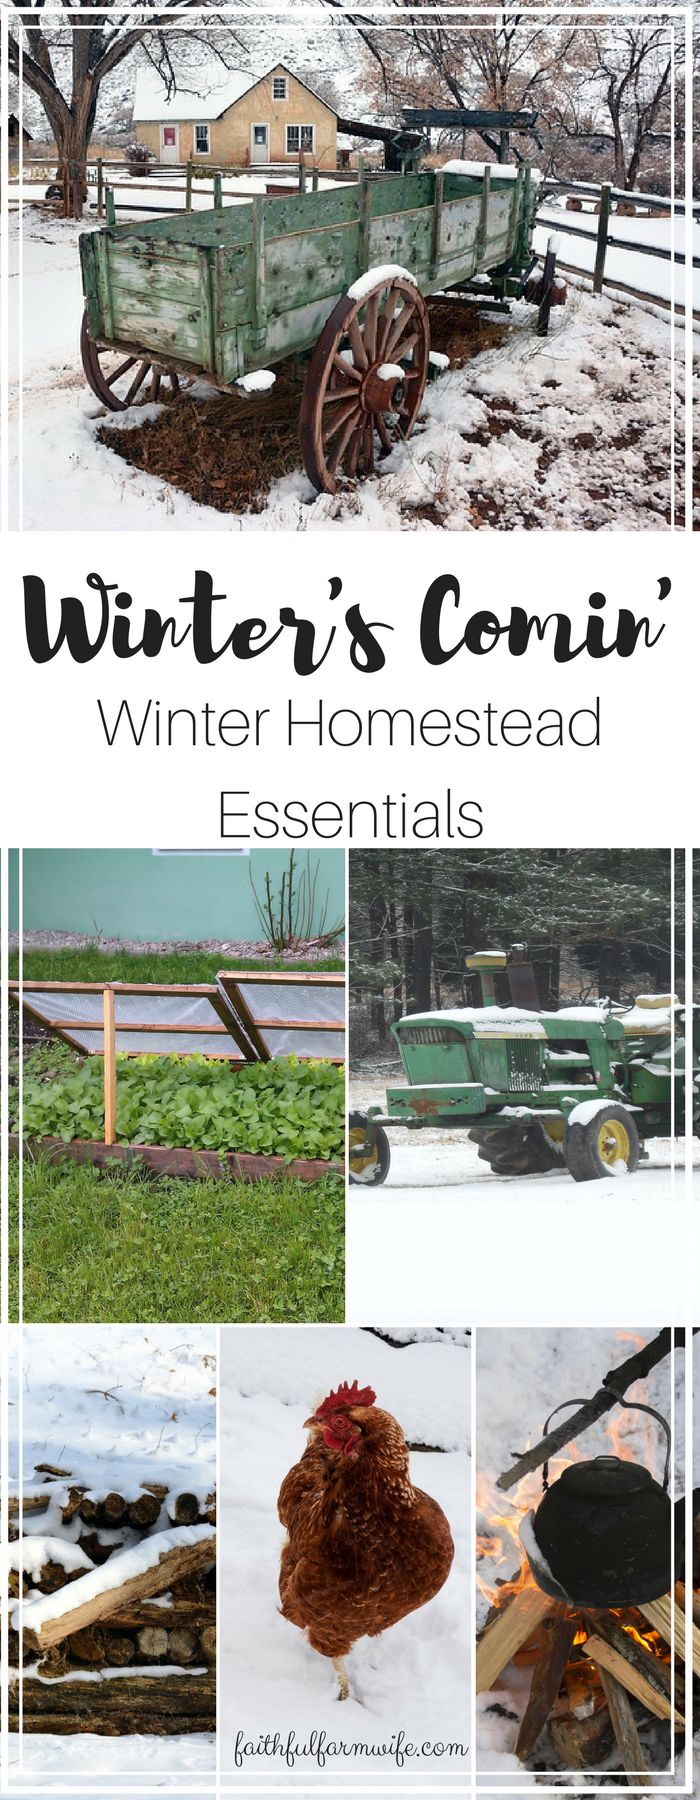 Everything on the homestead has to be prepped to survive the cold or you lose time, money, and lives. What do you consider winter homestead essentials?